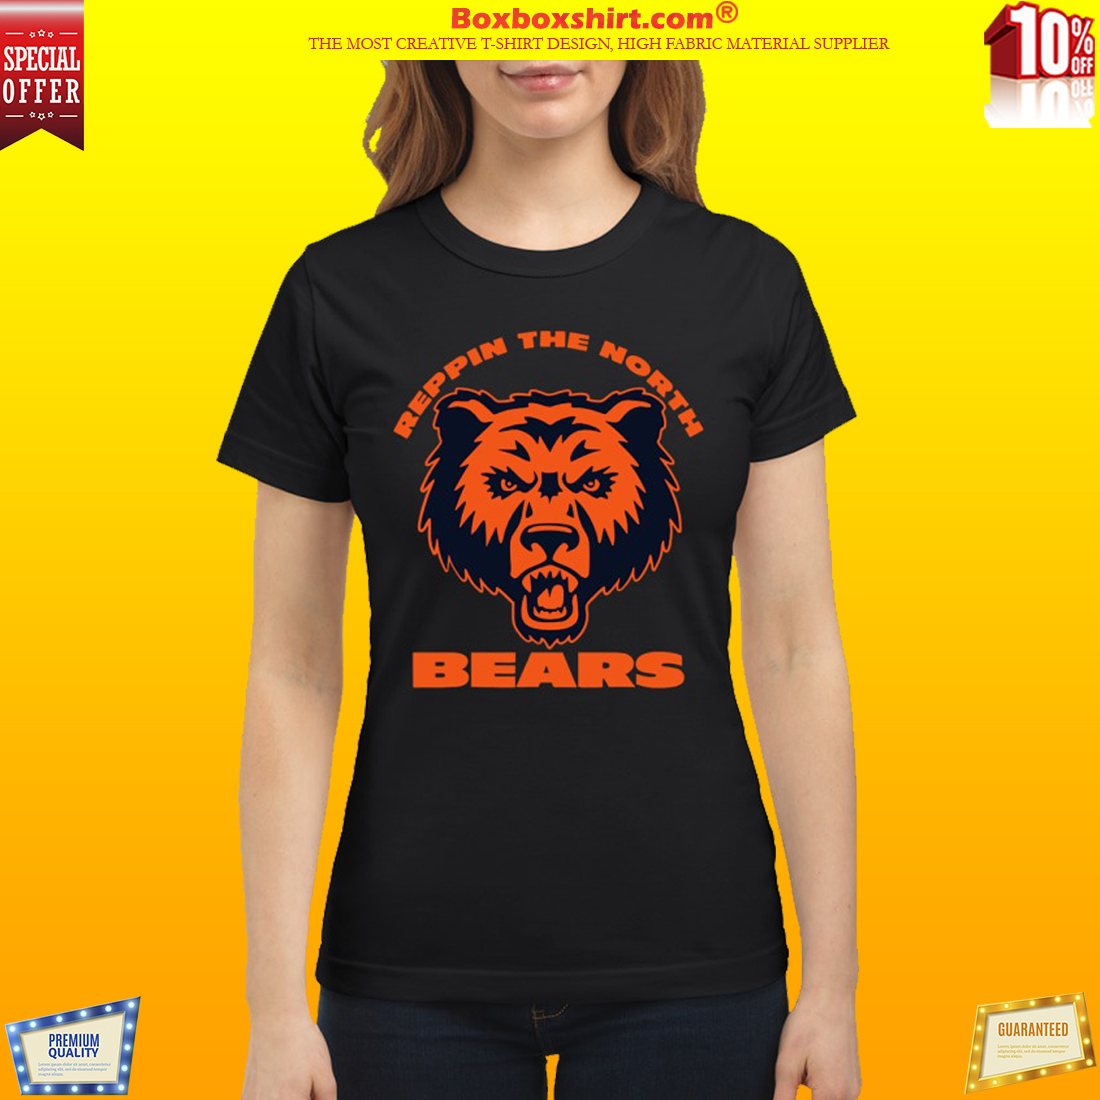 Chicago bears repping the North bears classic shirt